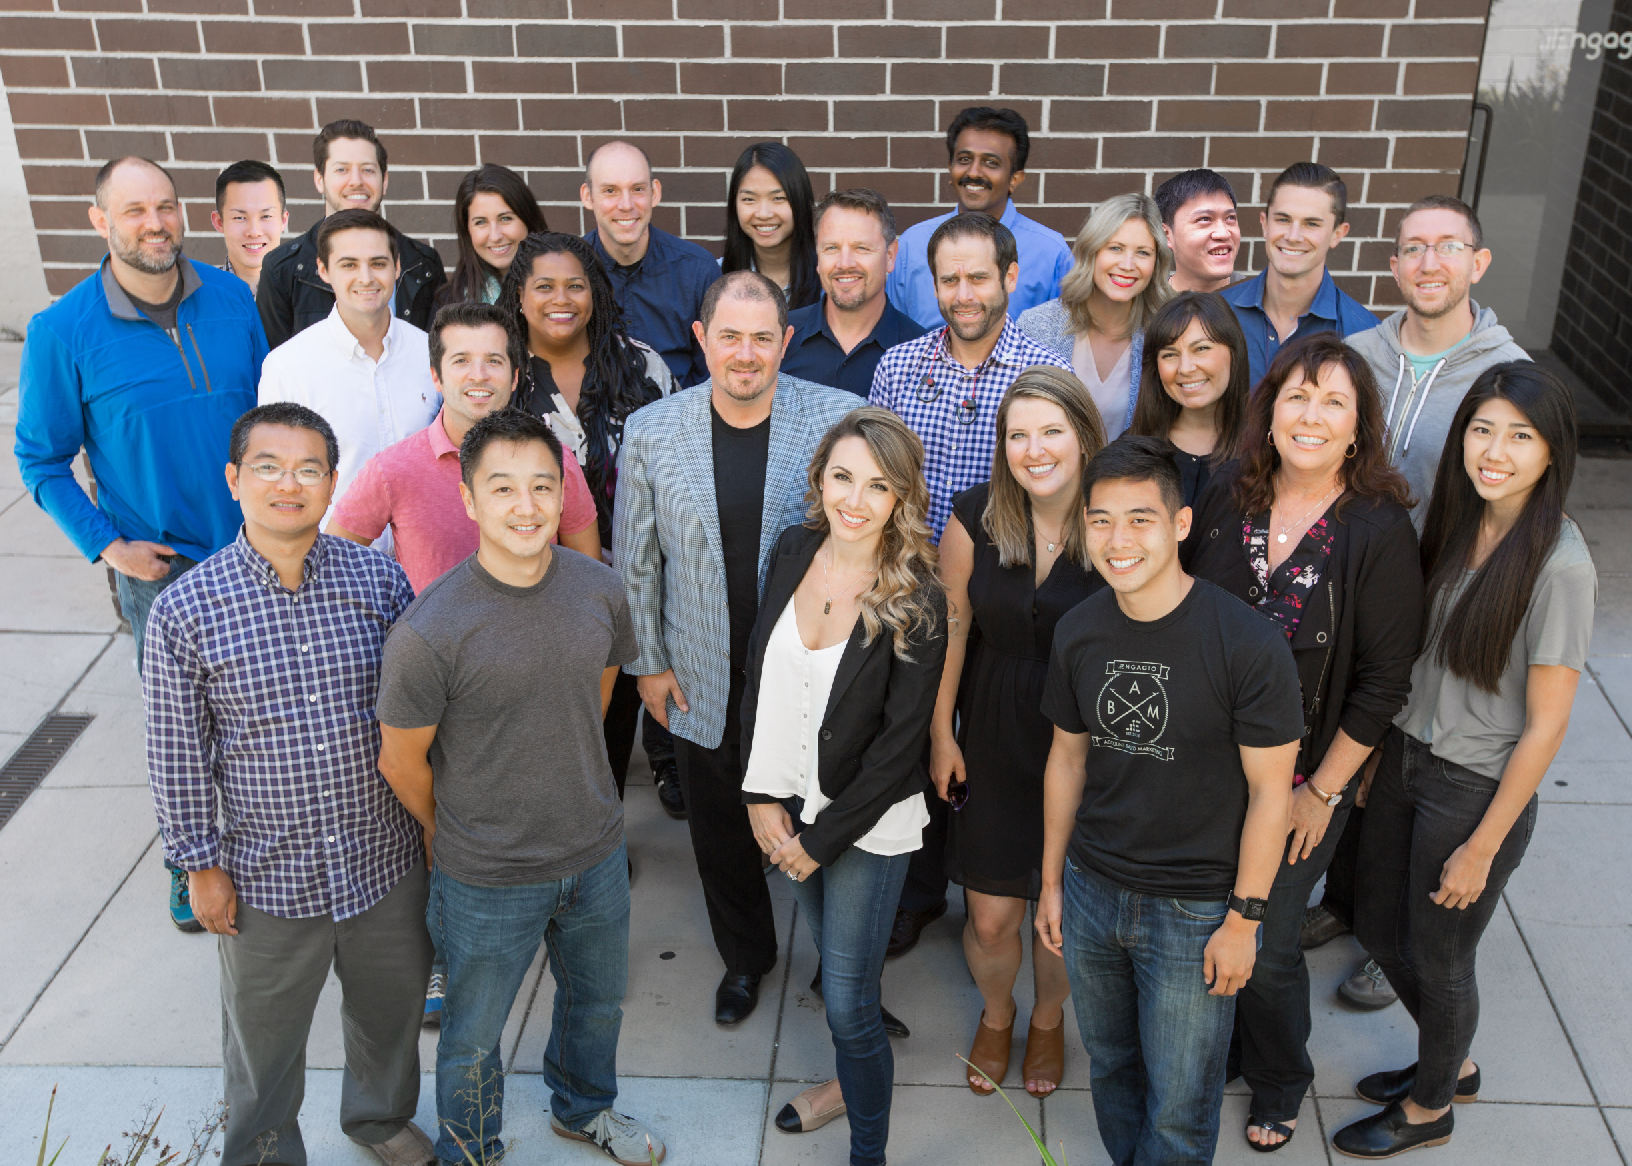 The Engagio team, with co-founder and CEO Jon Miller (in center with jacket)